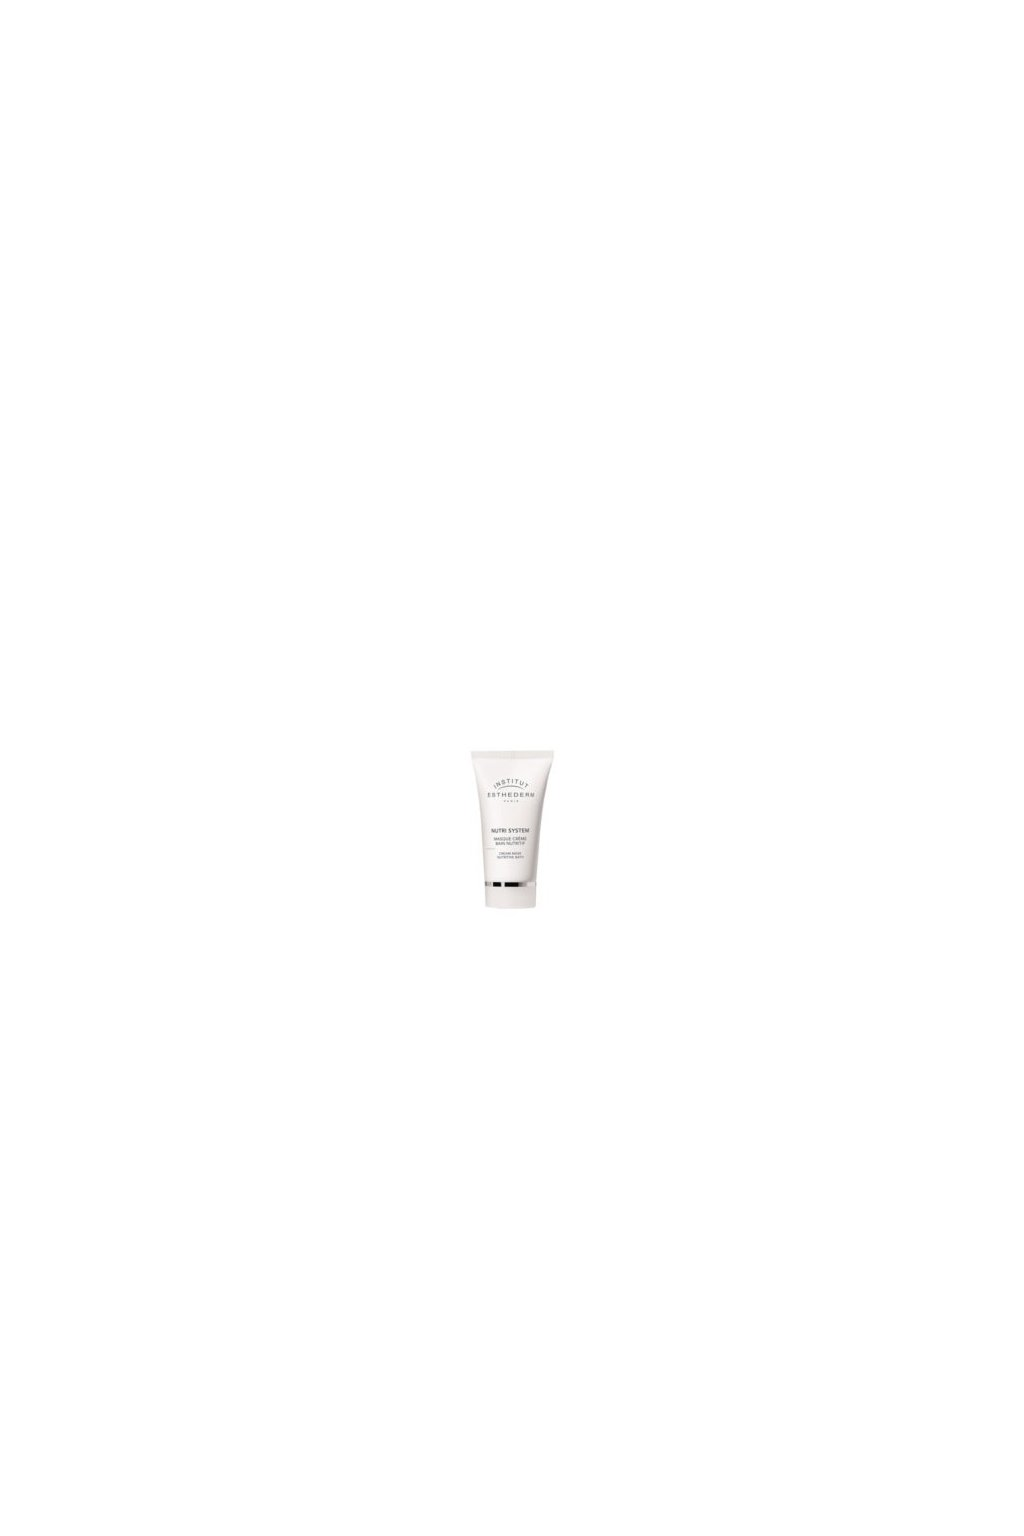 NUTRI SYSTEM Cream Mask Nutritive Bath 75ml V660301 247x300